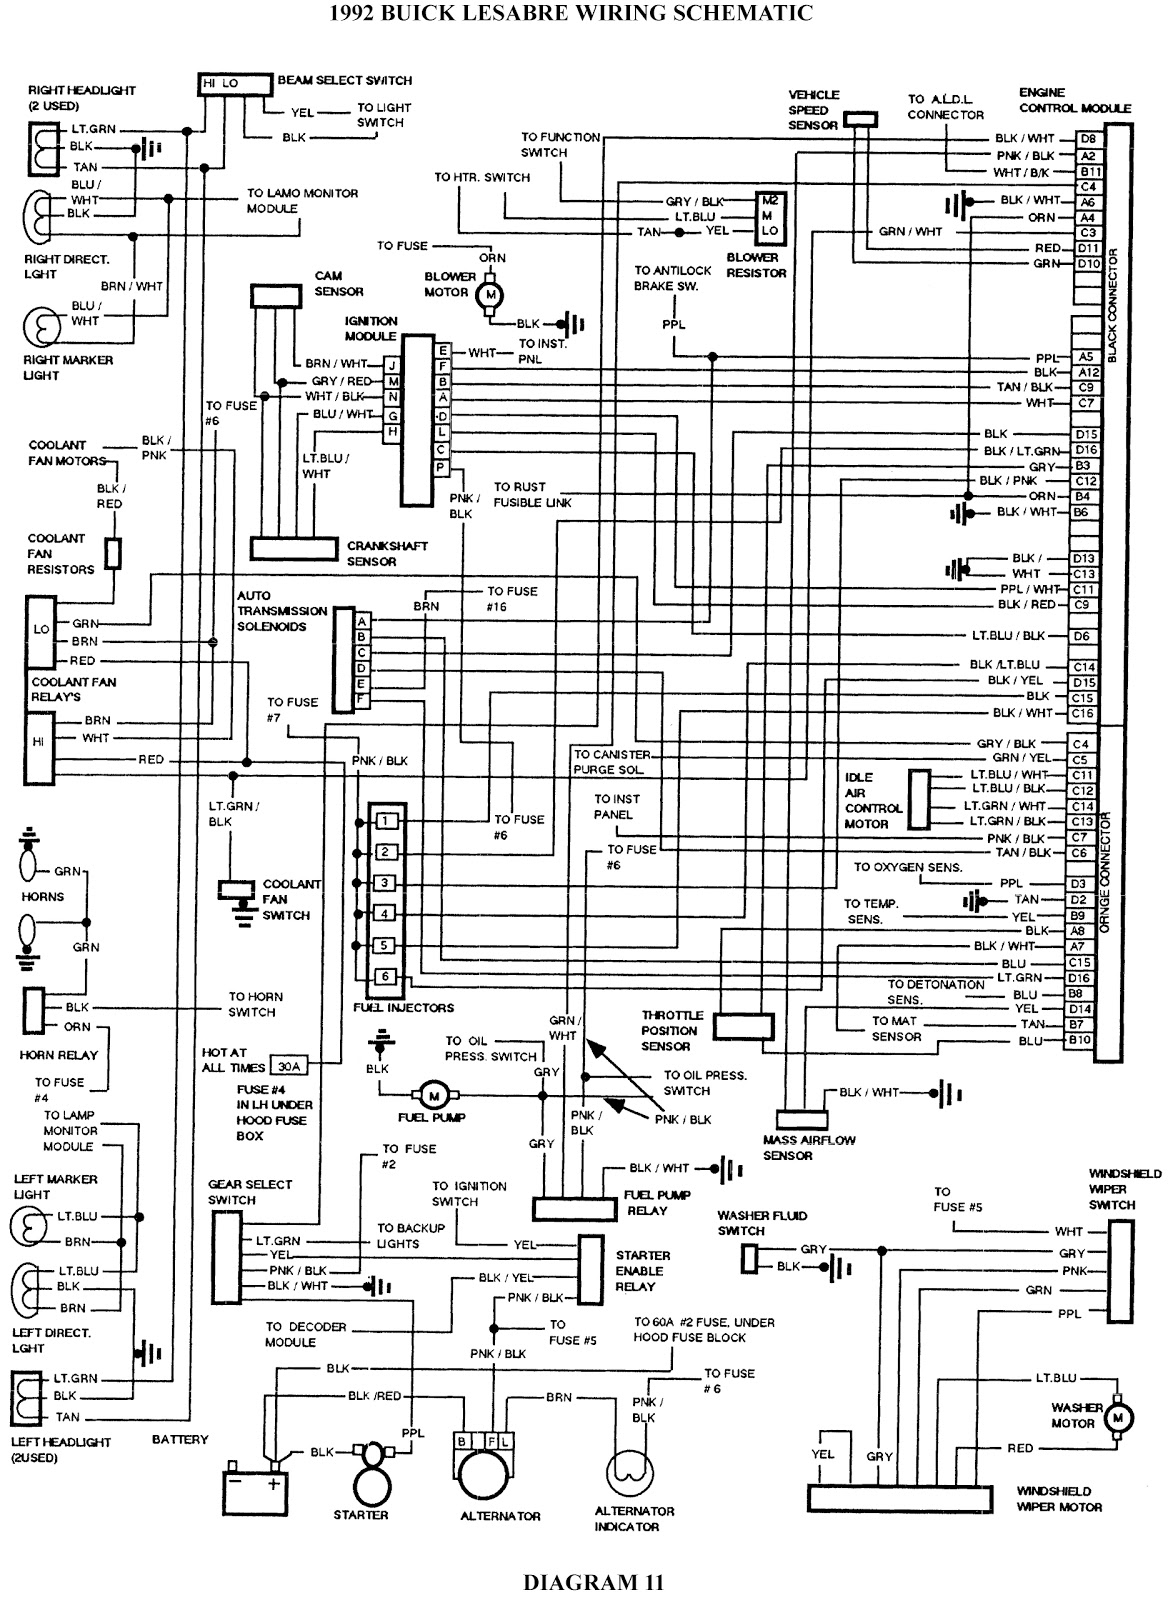 DIAGRAM] 2003 Buick Lesabre Wiring Diagram FULL Version HD Quality Wiring  Diagram - FIREARMDIAGRAMS.MARIOCRIVAROONLUS.ITDiagram Database